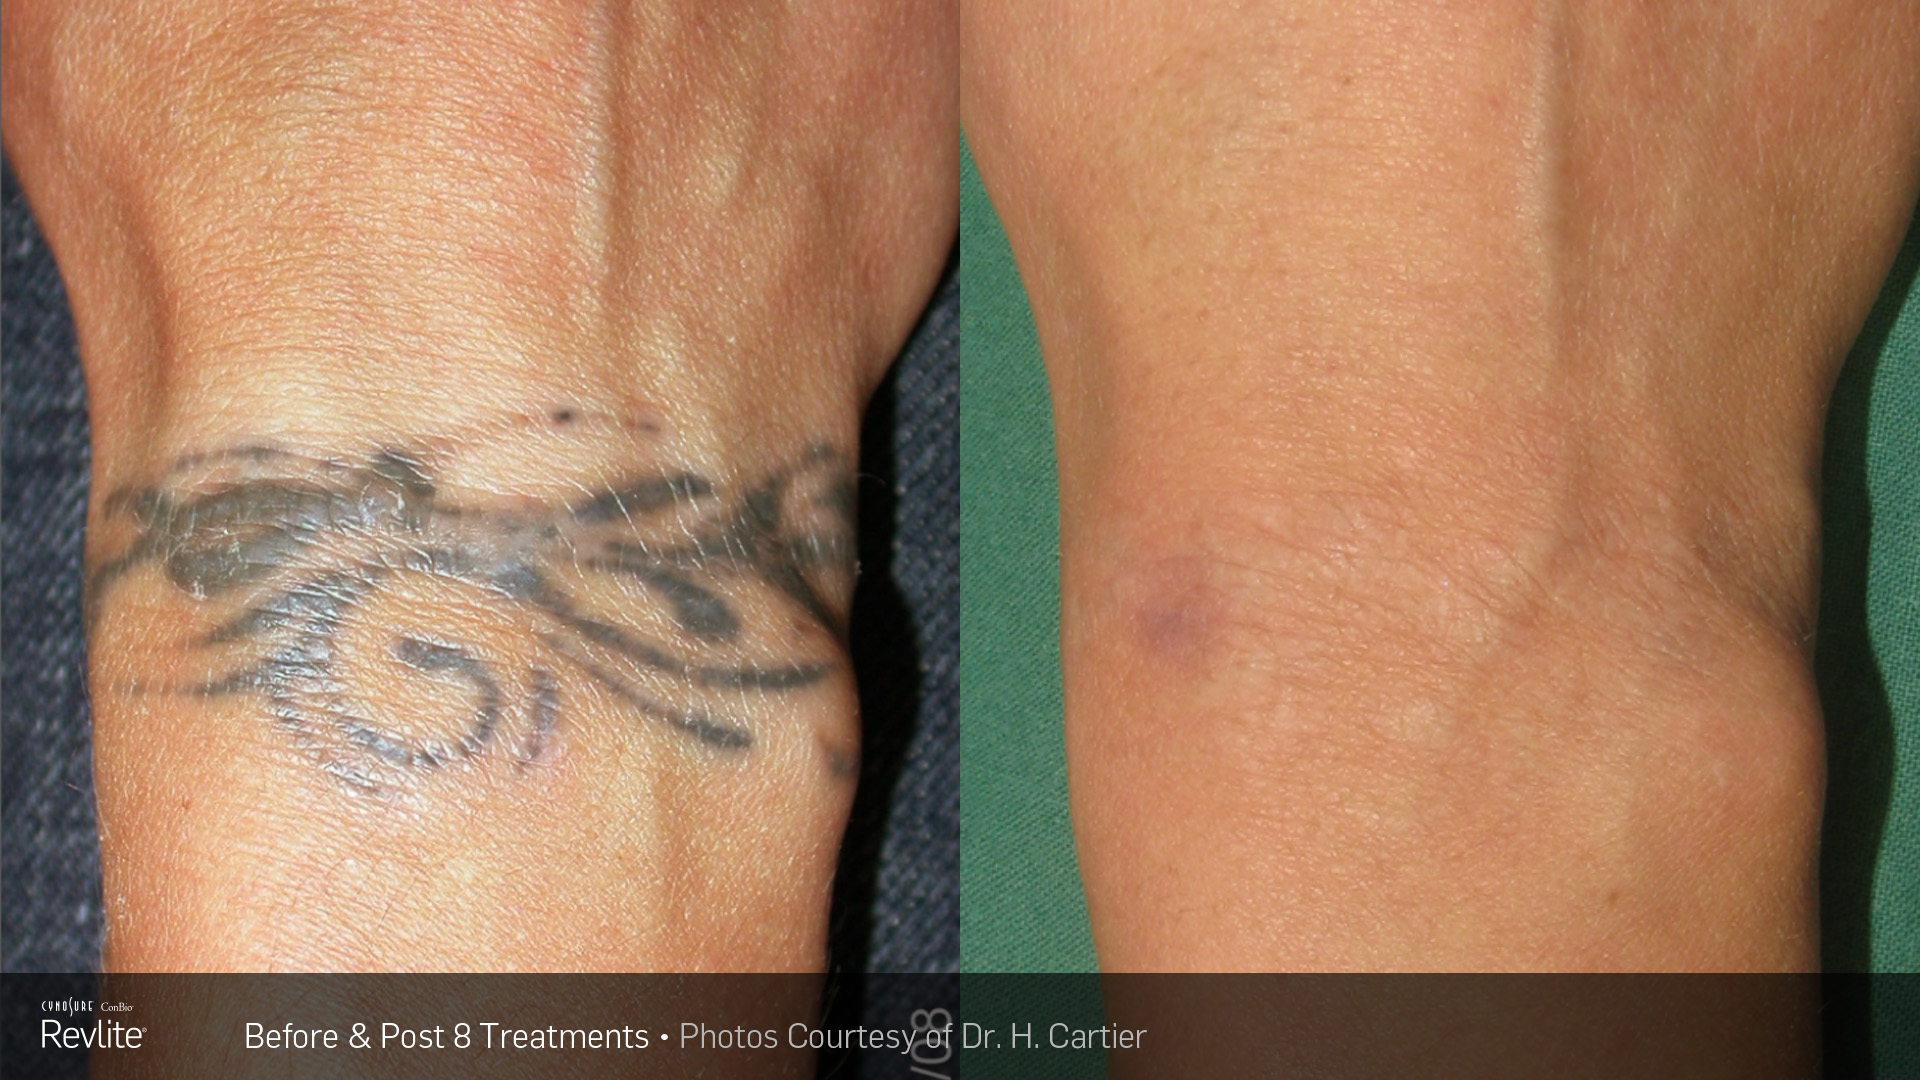 BA-Revlite-Tattoo-H-Cartier-Post8Tx